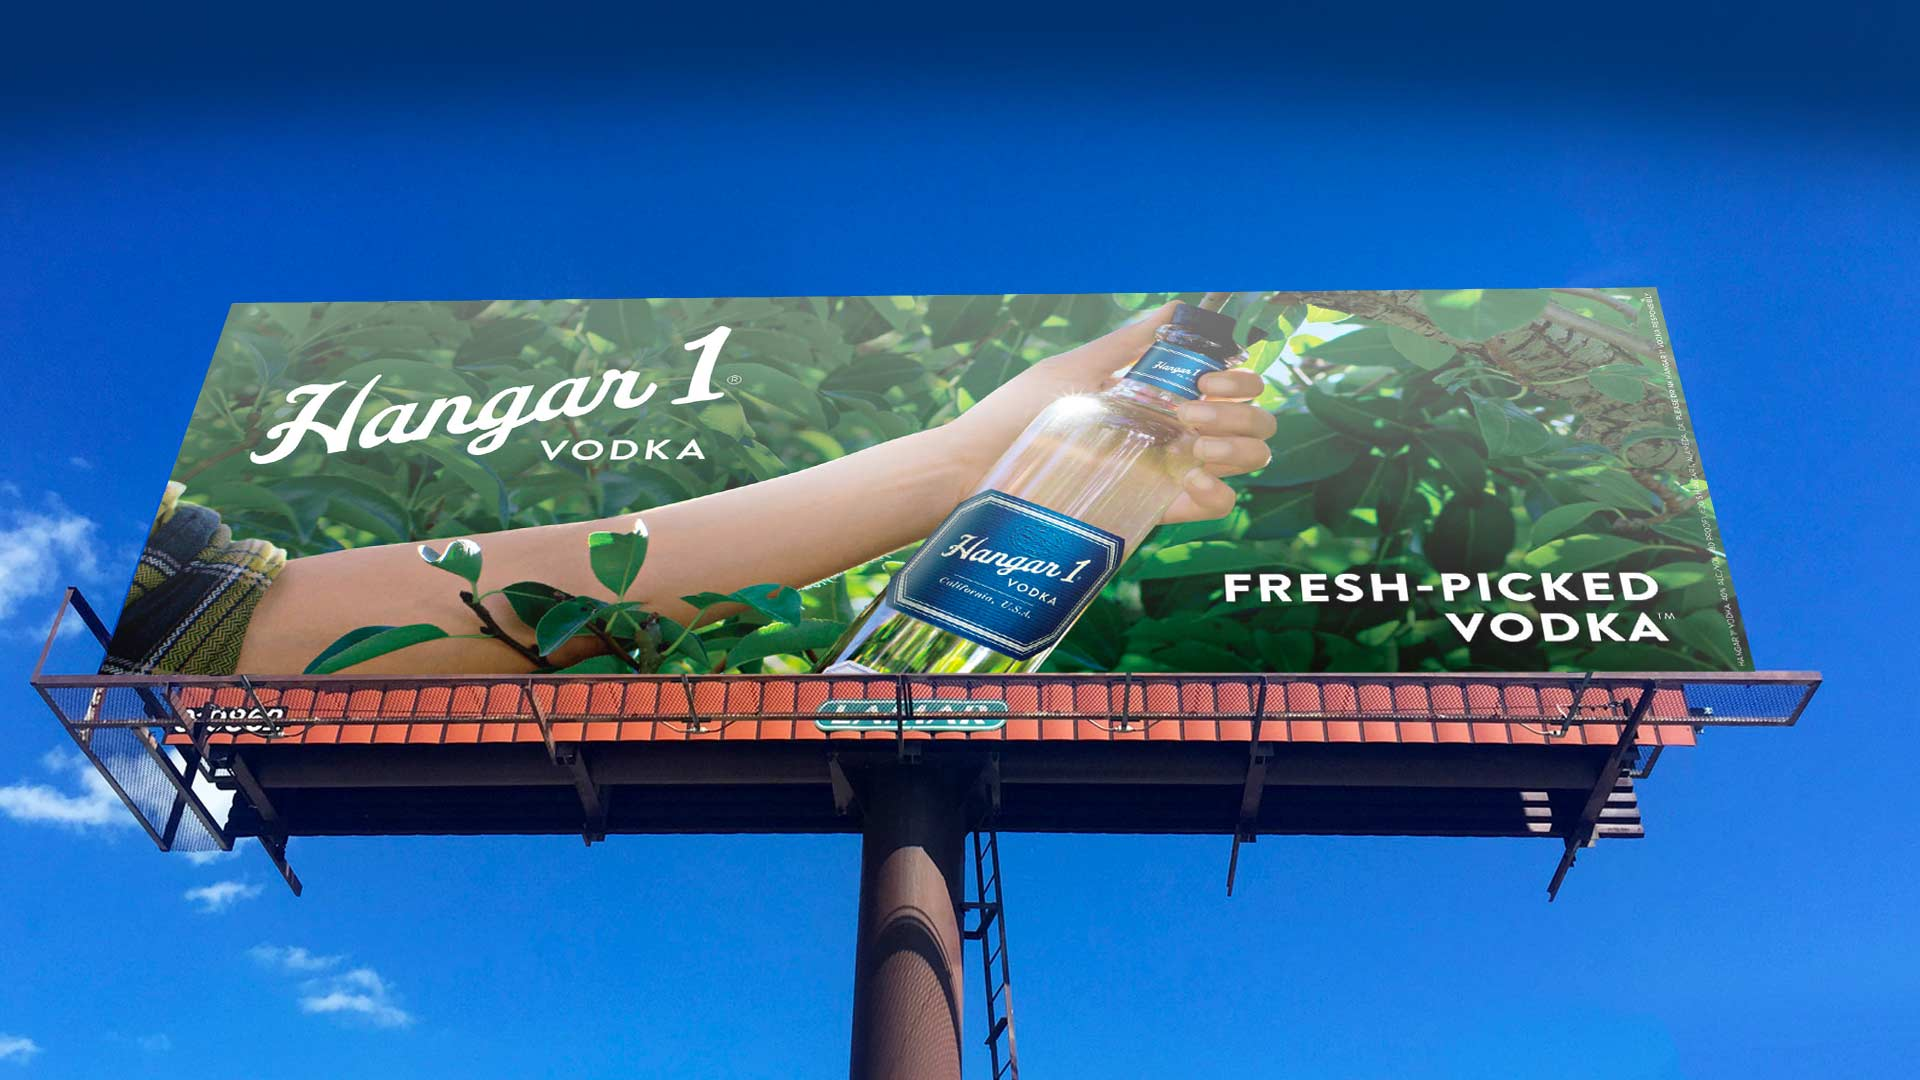 Hangar 1 – Tree Billboard